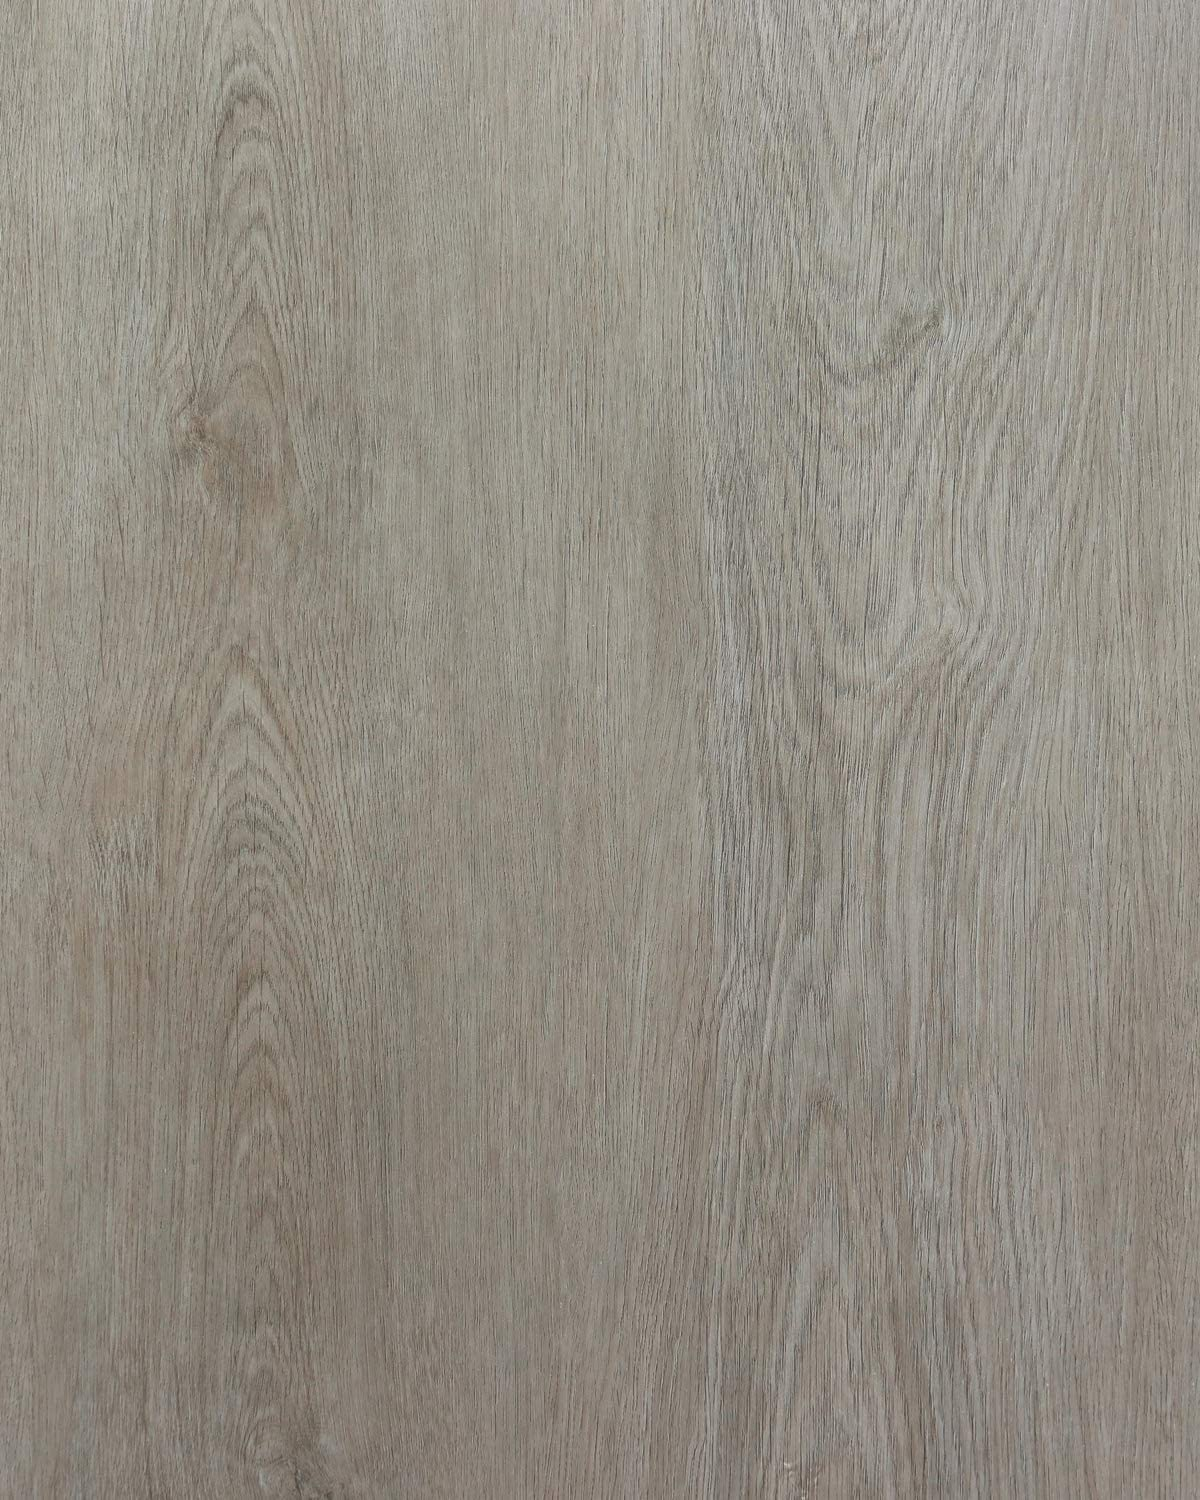 """Grey Wood Wallpaper Wood Peel and Stick Wallpaper Wood Grain Wallpaper 17.7""""×118""""Removable Wallpaper Self Adhesive Wallpaper for Furniture Decorative Wall Covering Liner Roll"""